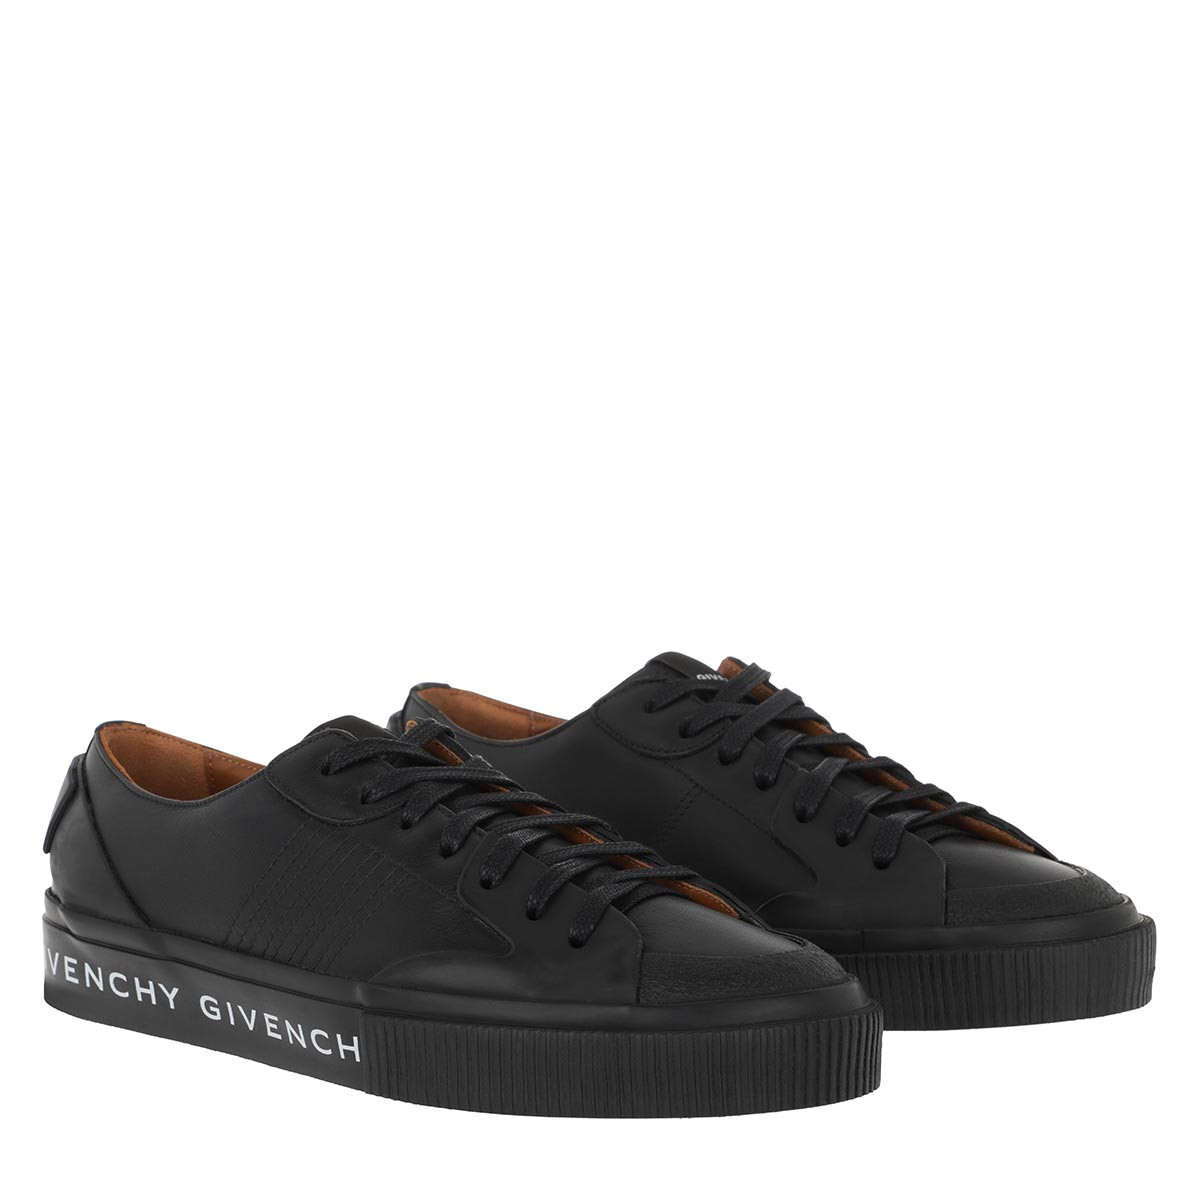 Givenchy Sneakers - Tennis Sneaker Black - in schwarz - für Damen